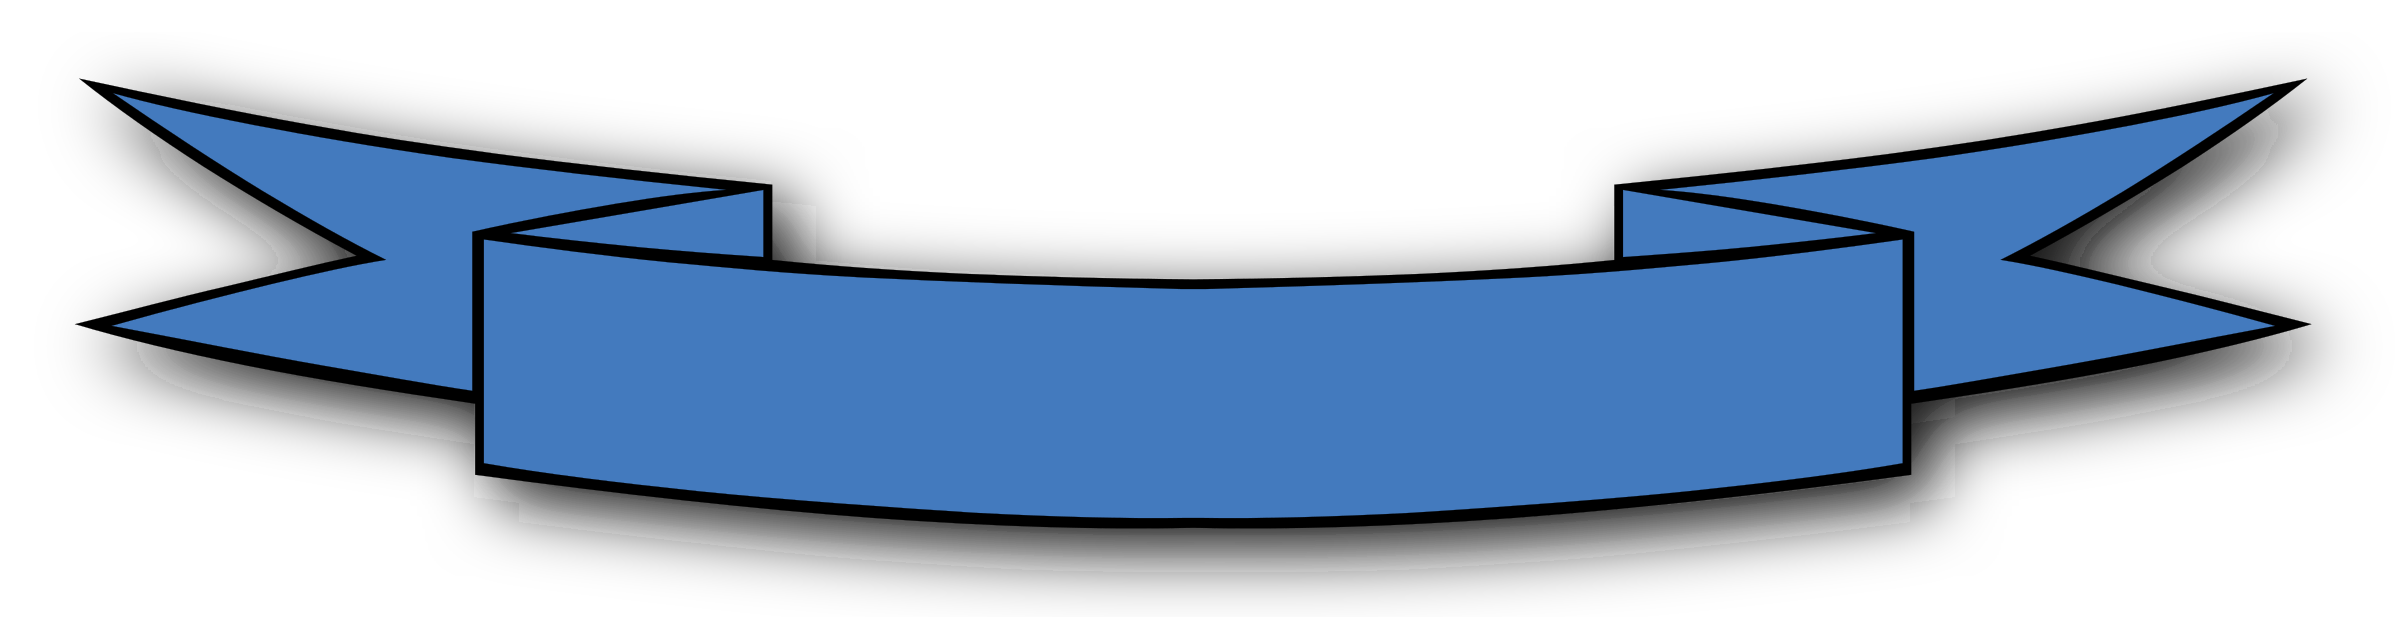 blue clipart ribbon banner